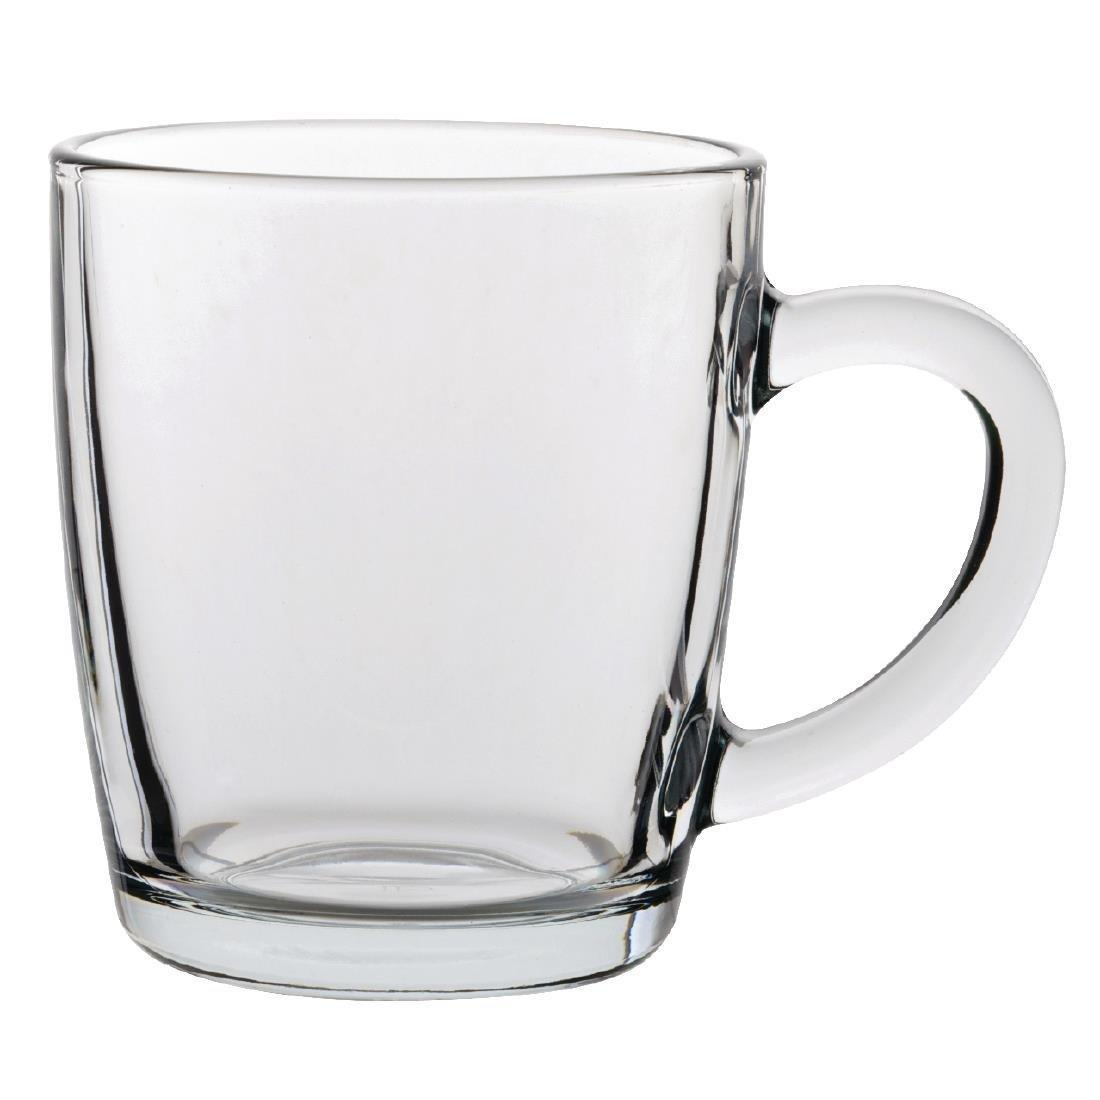 Barrel Mug Toughened - 340ml 12oz (Box 24) - GF461